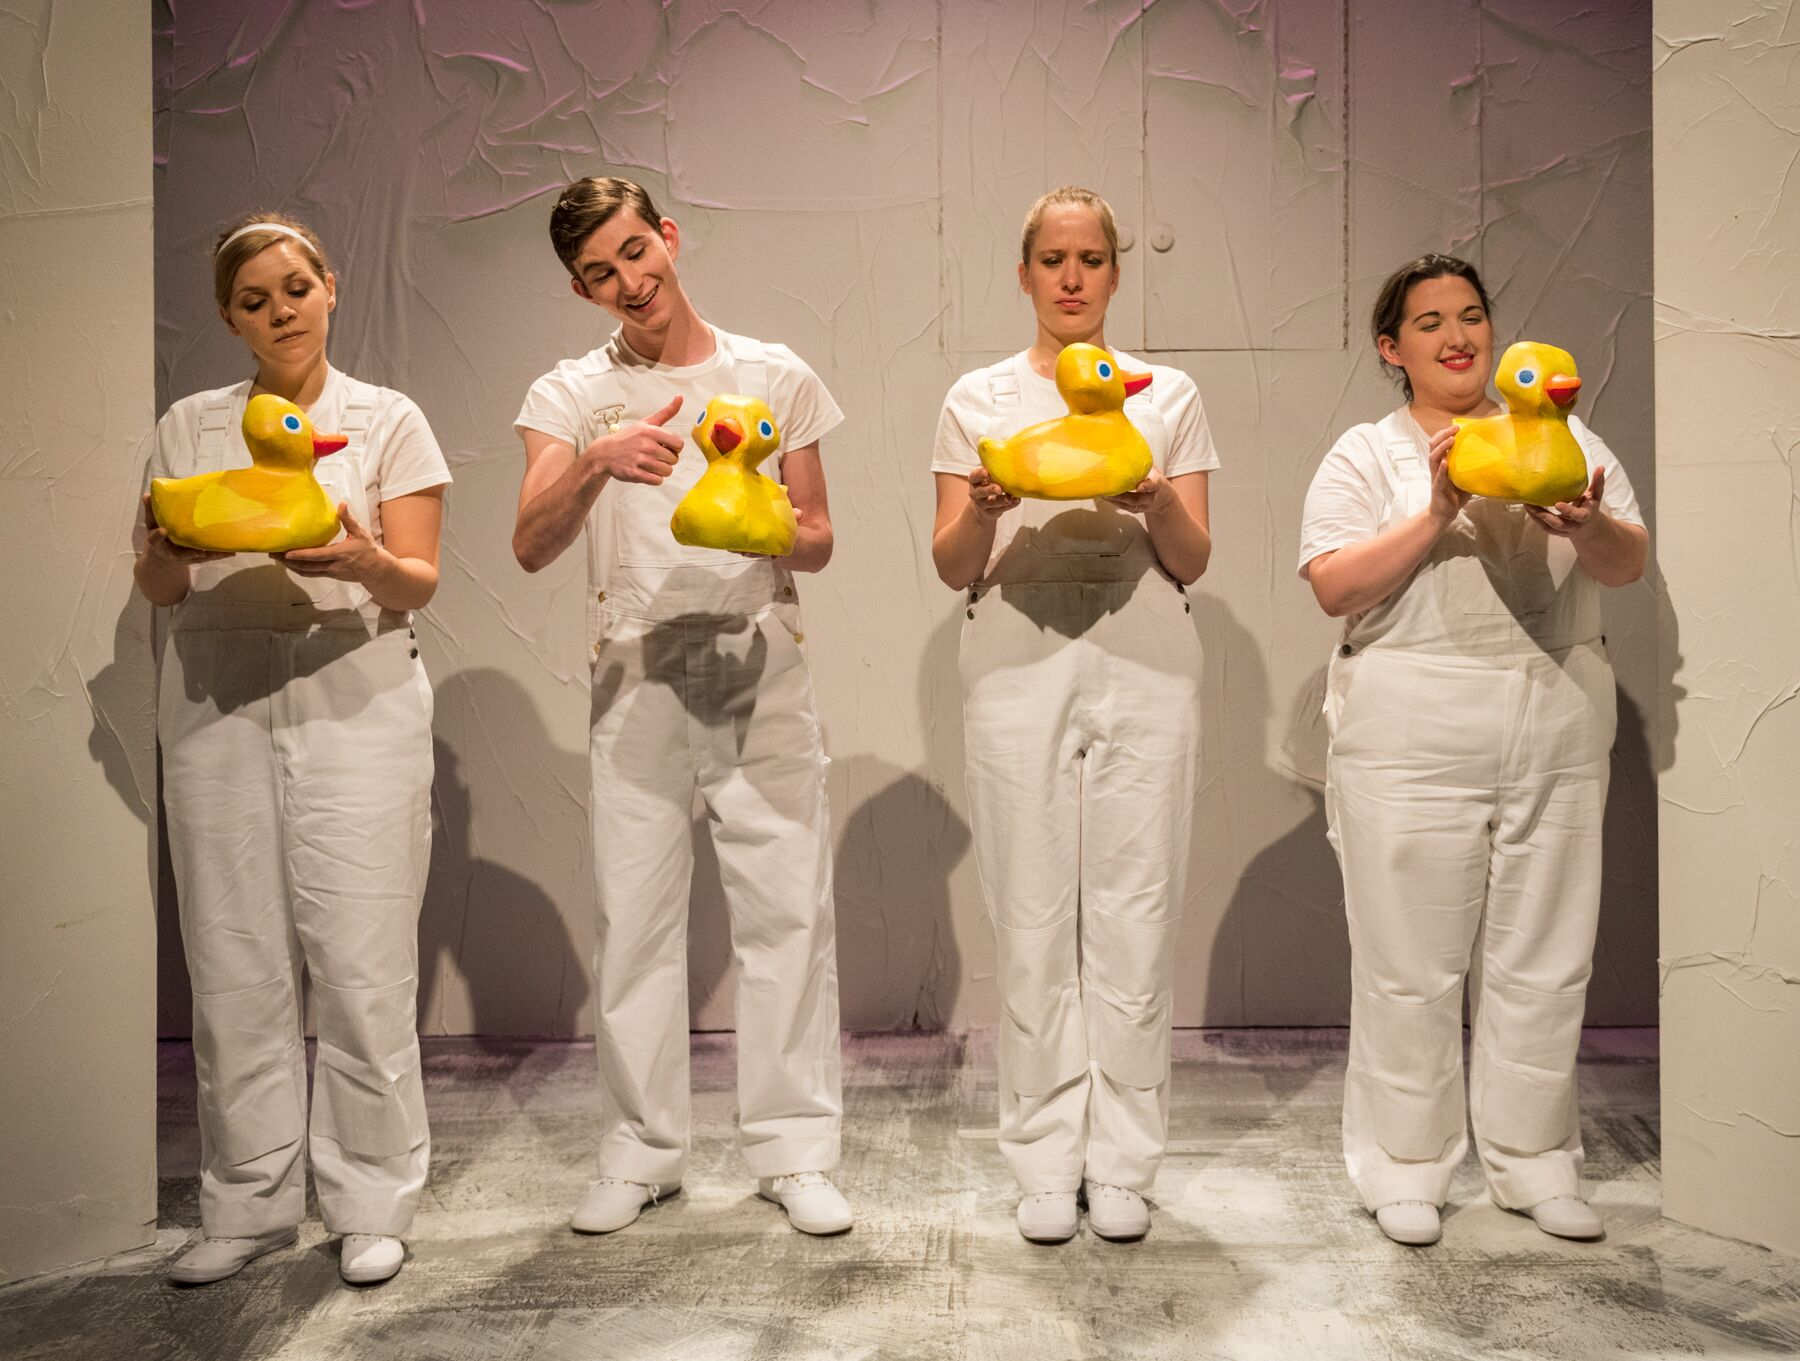 rubber ducks The World of Eric Carle Comes to Life in The Very Hungry Caterpillar Show